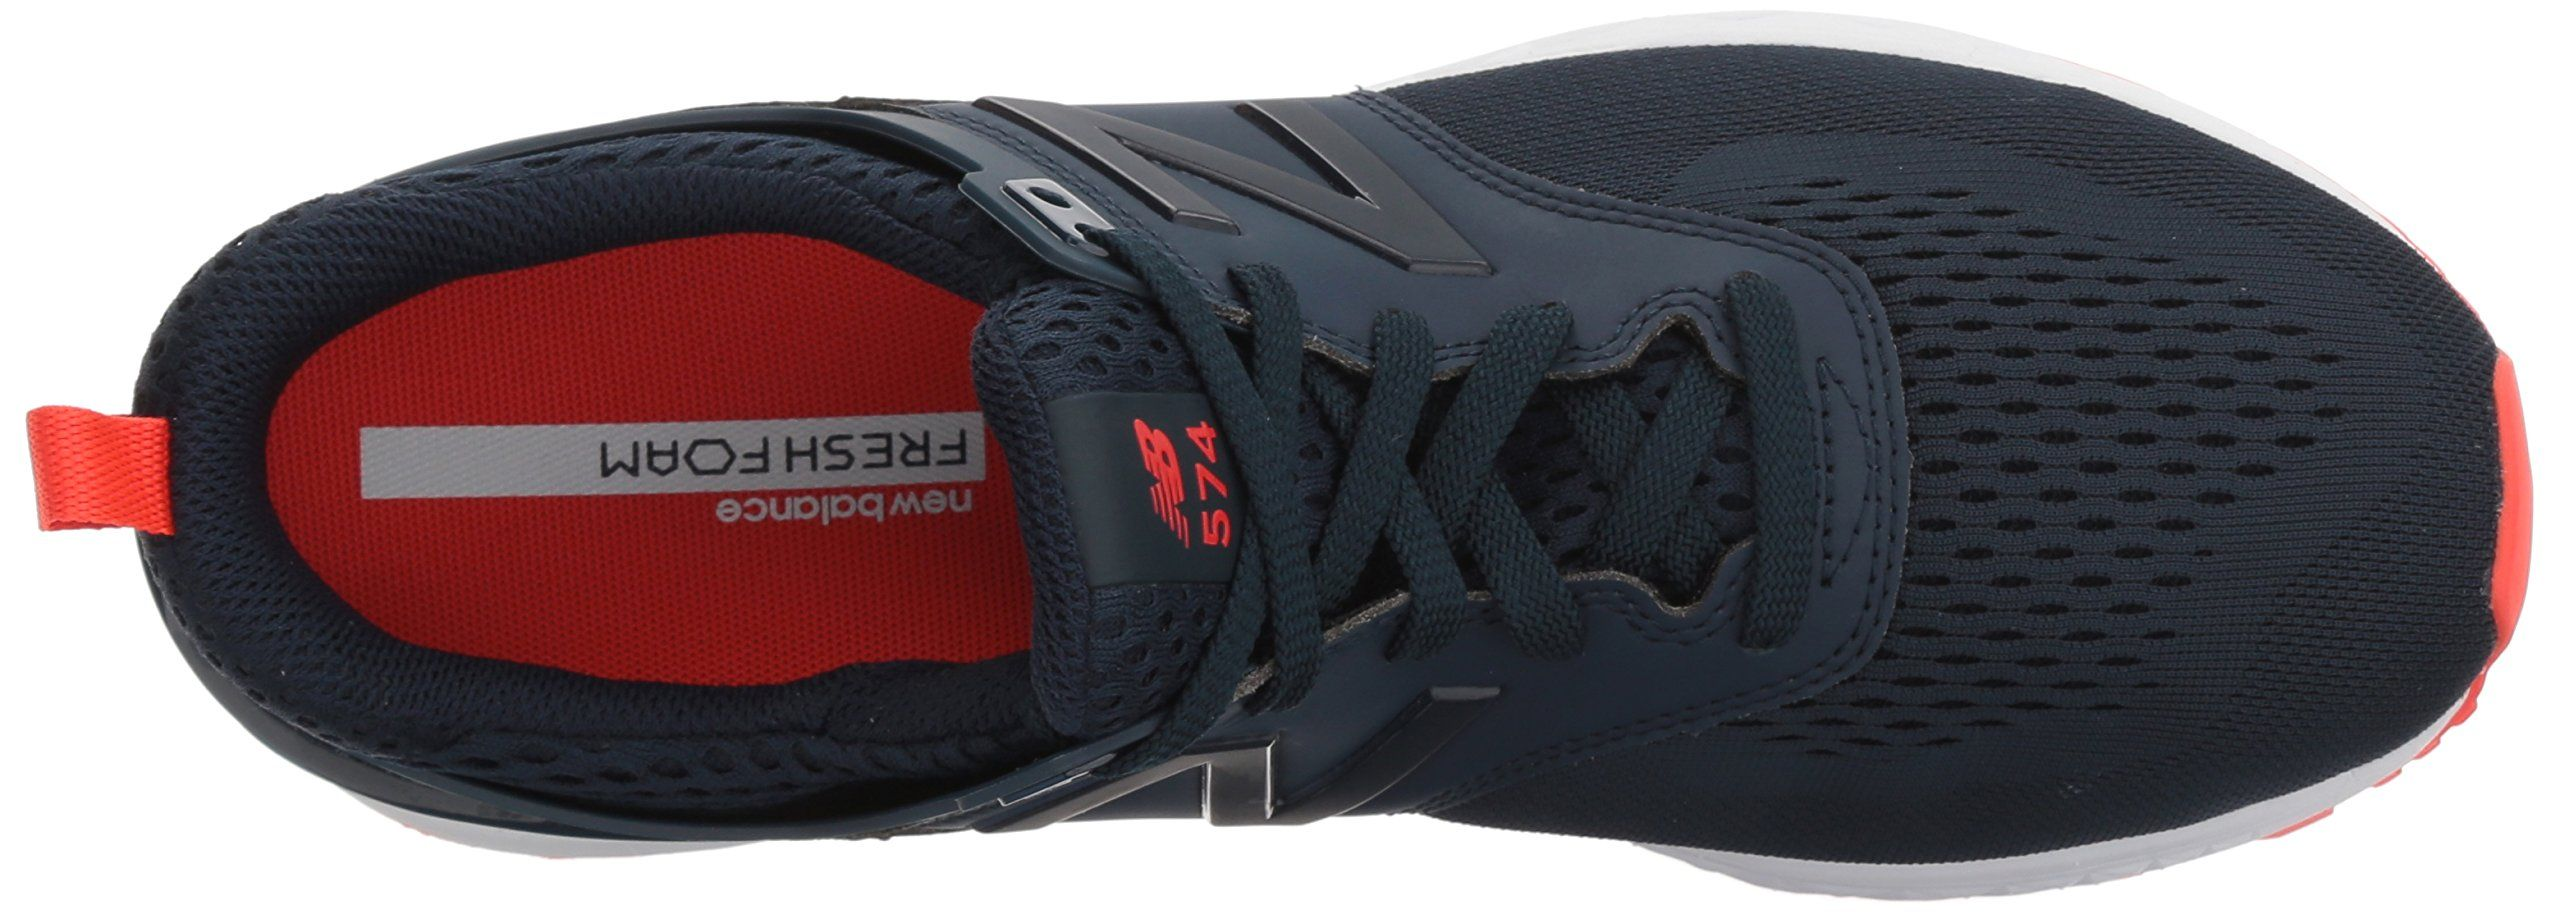 New Balance Ws574 Ftwr You Can Get Additional Details At The Image Link This Is An Affiliate Link And I Recei New Balance Men New Balance Shoes New Balance